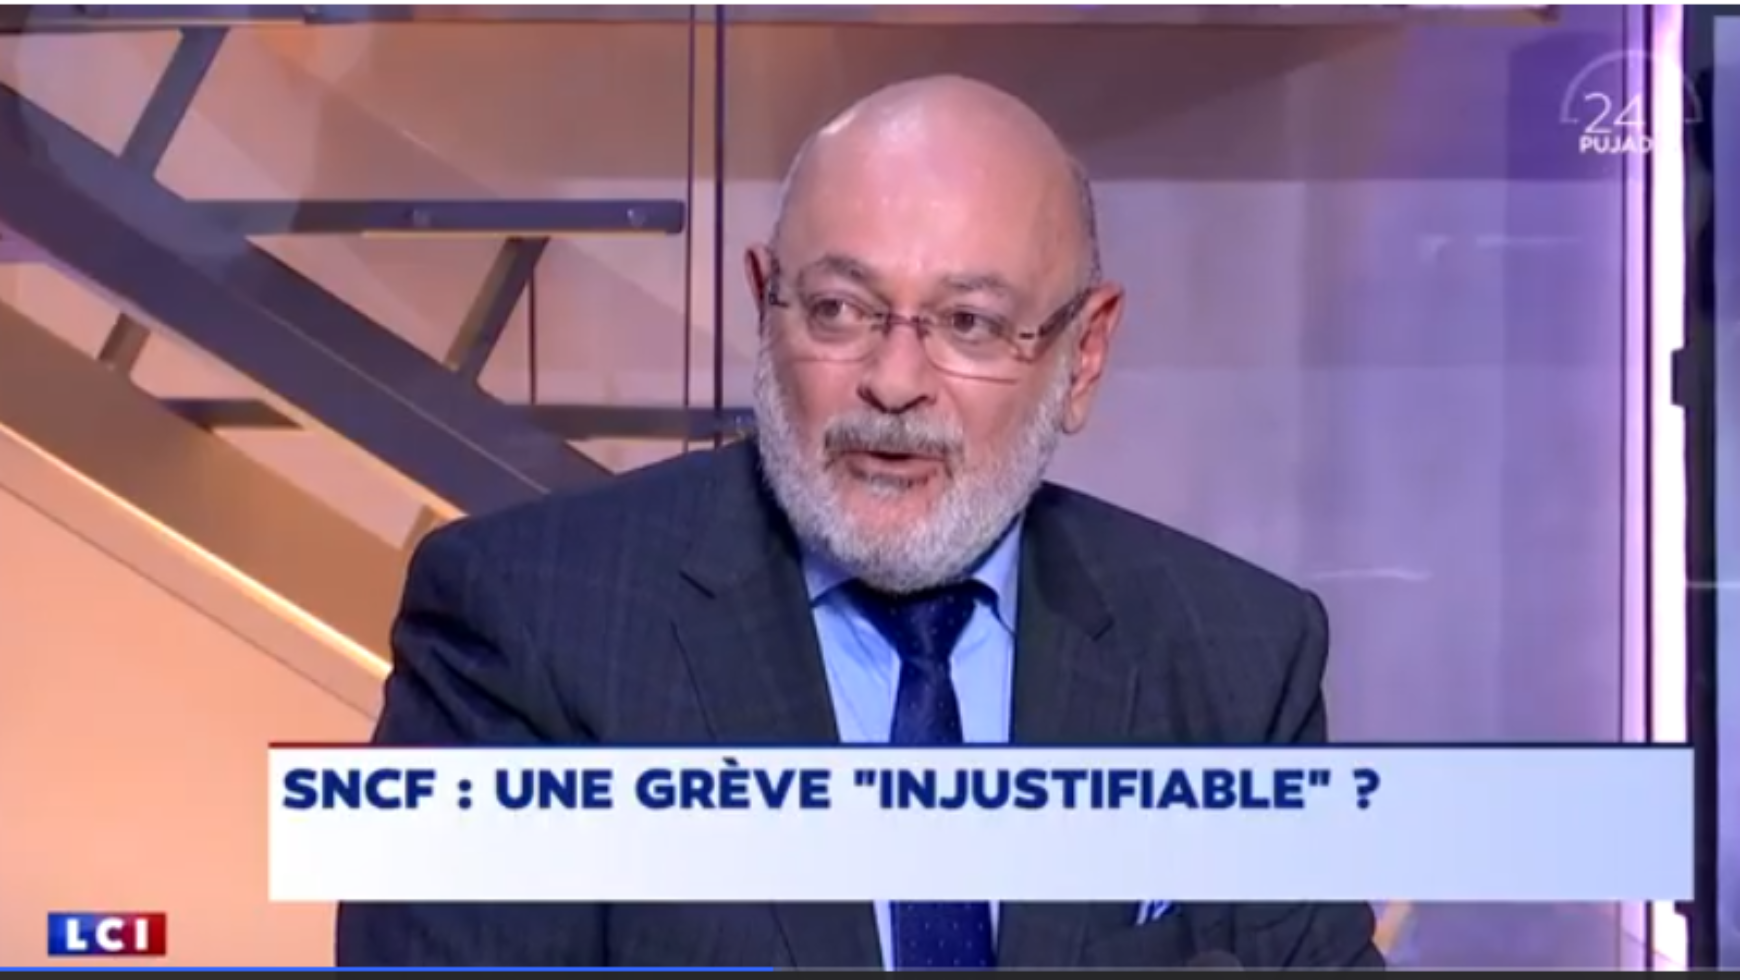 24H PUJADAS, L'info en questions – SNCF : UNE GREVE « INJUSTIFIABLE » ? replay du lundi 2 avril 2018